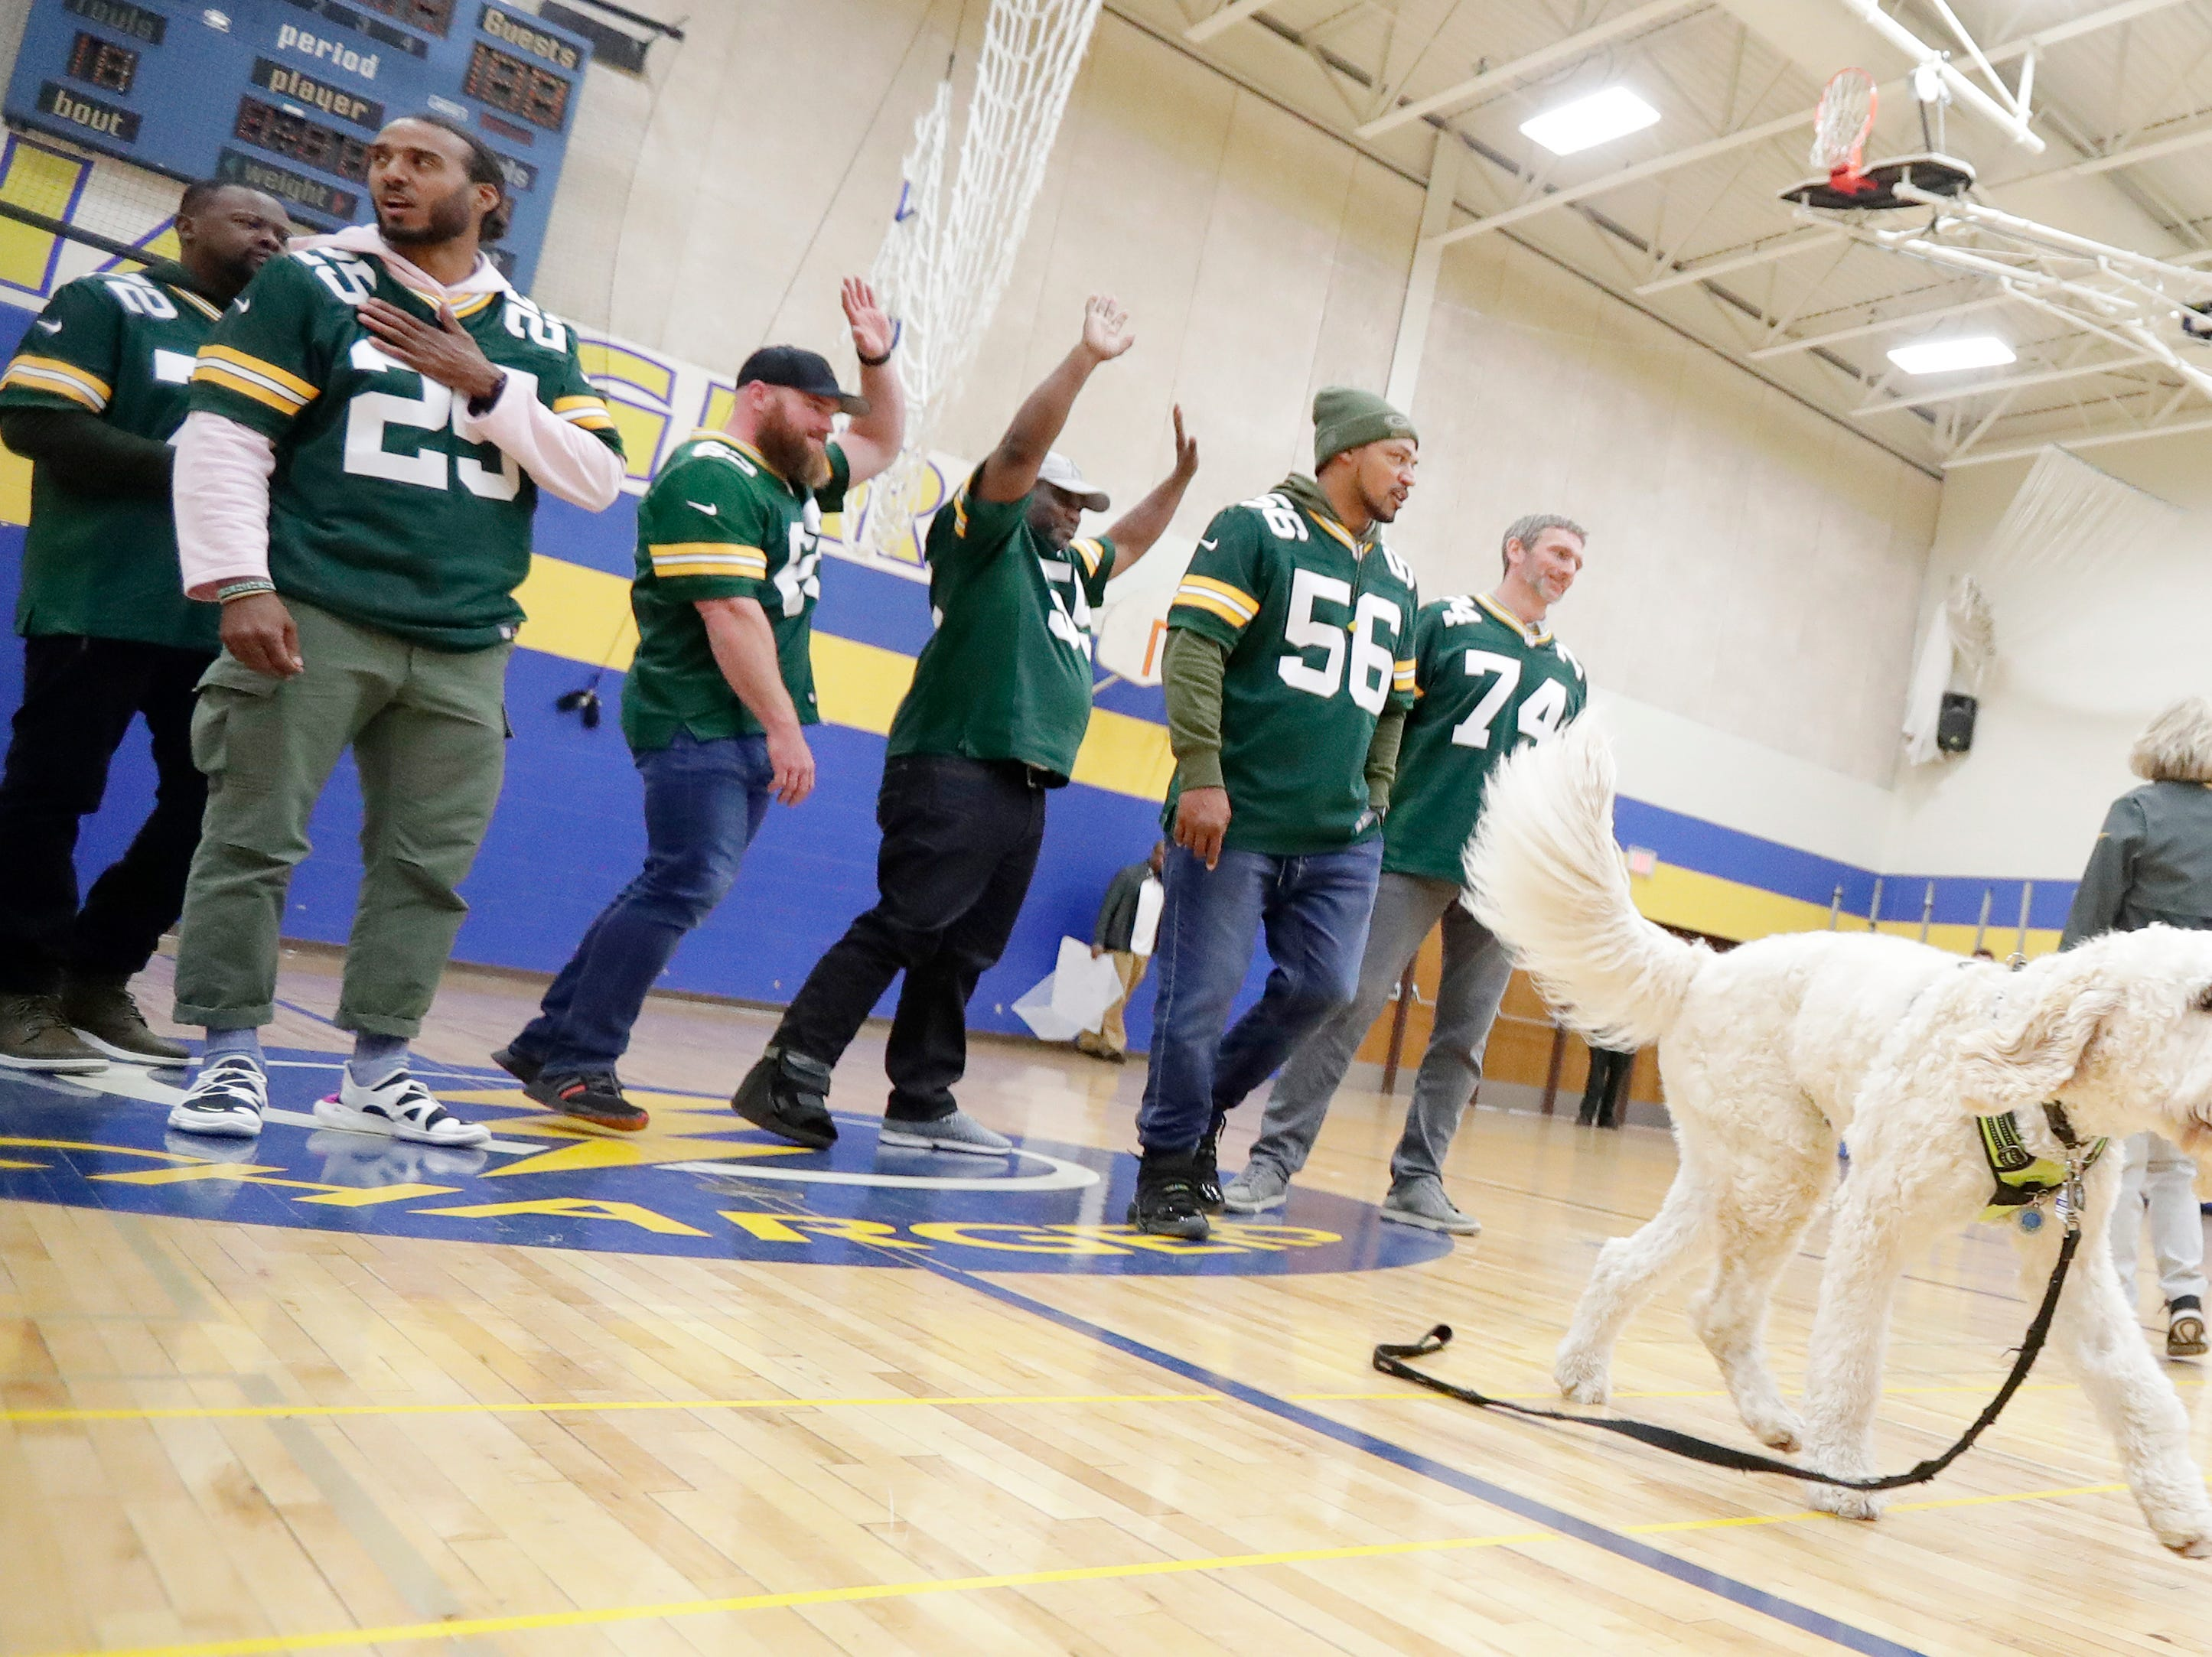 Former Green Bay Packers players wave to the crowd after posing with Henry, the school therapy dog, during a stop on the Packers Tailgate Tour at Ben Franklin Junior High High School on Tuesday, April 9, 2019 in Stevens Point, Wis.